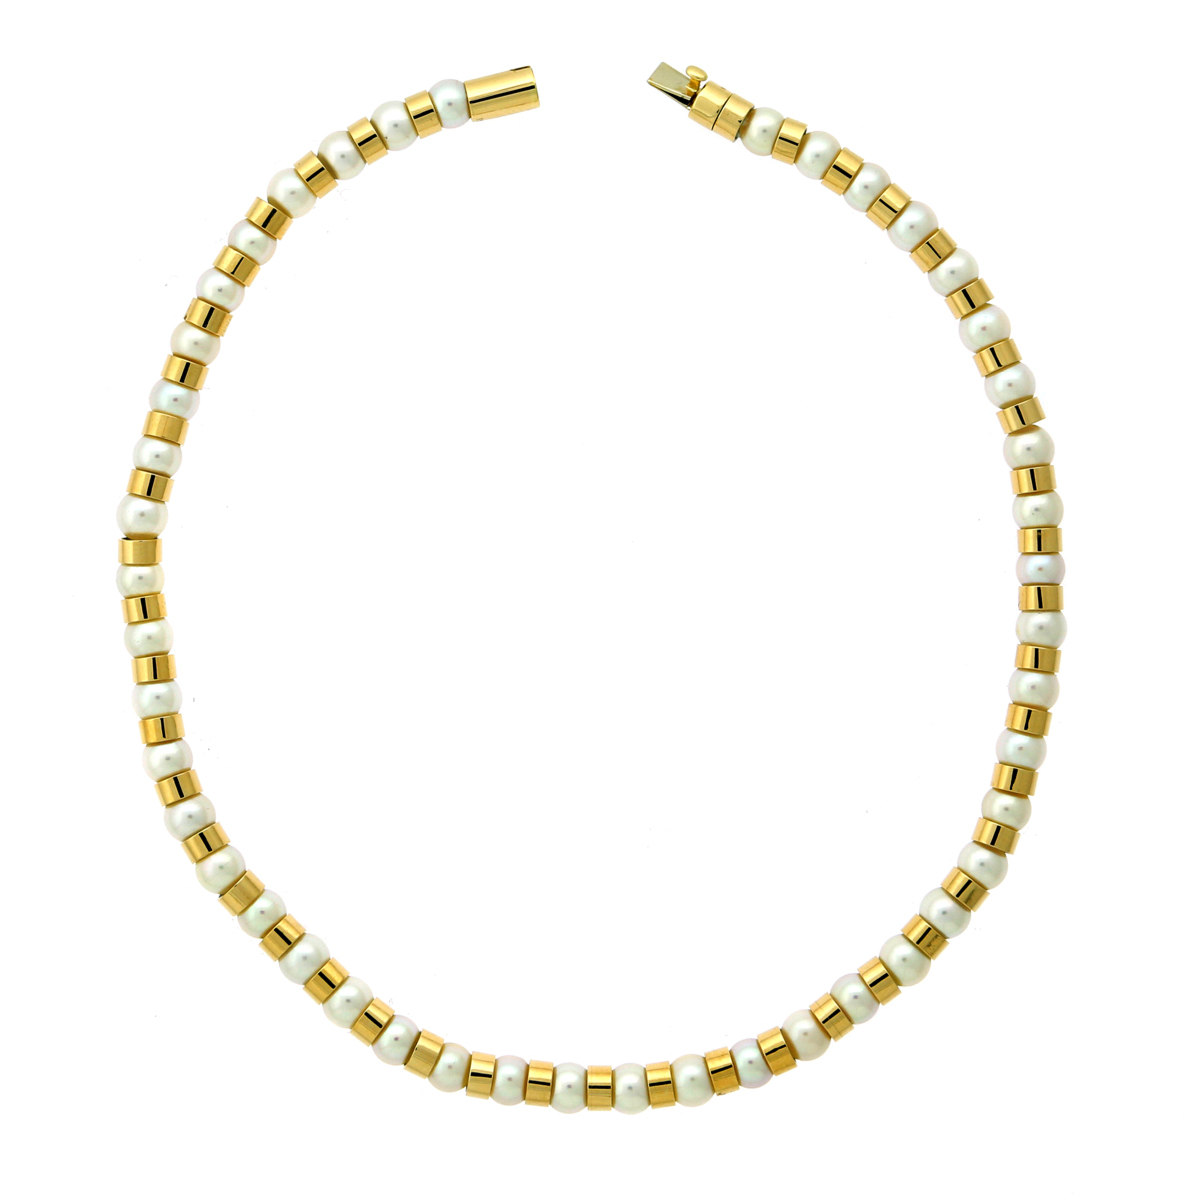 Chanel Yellow Gold Pearl Bead Necklace - Chanel Jewelry